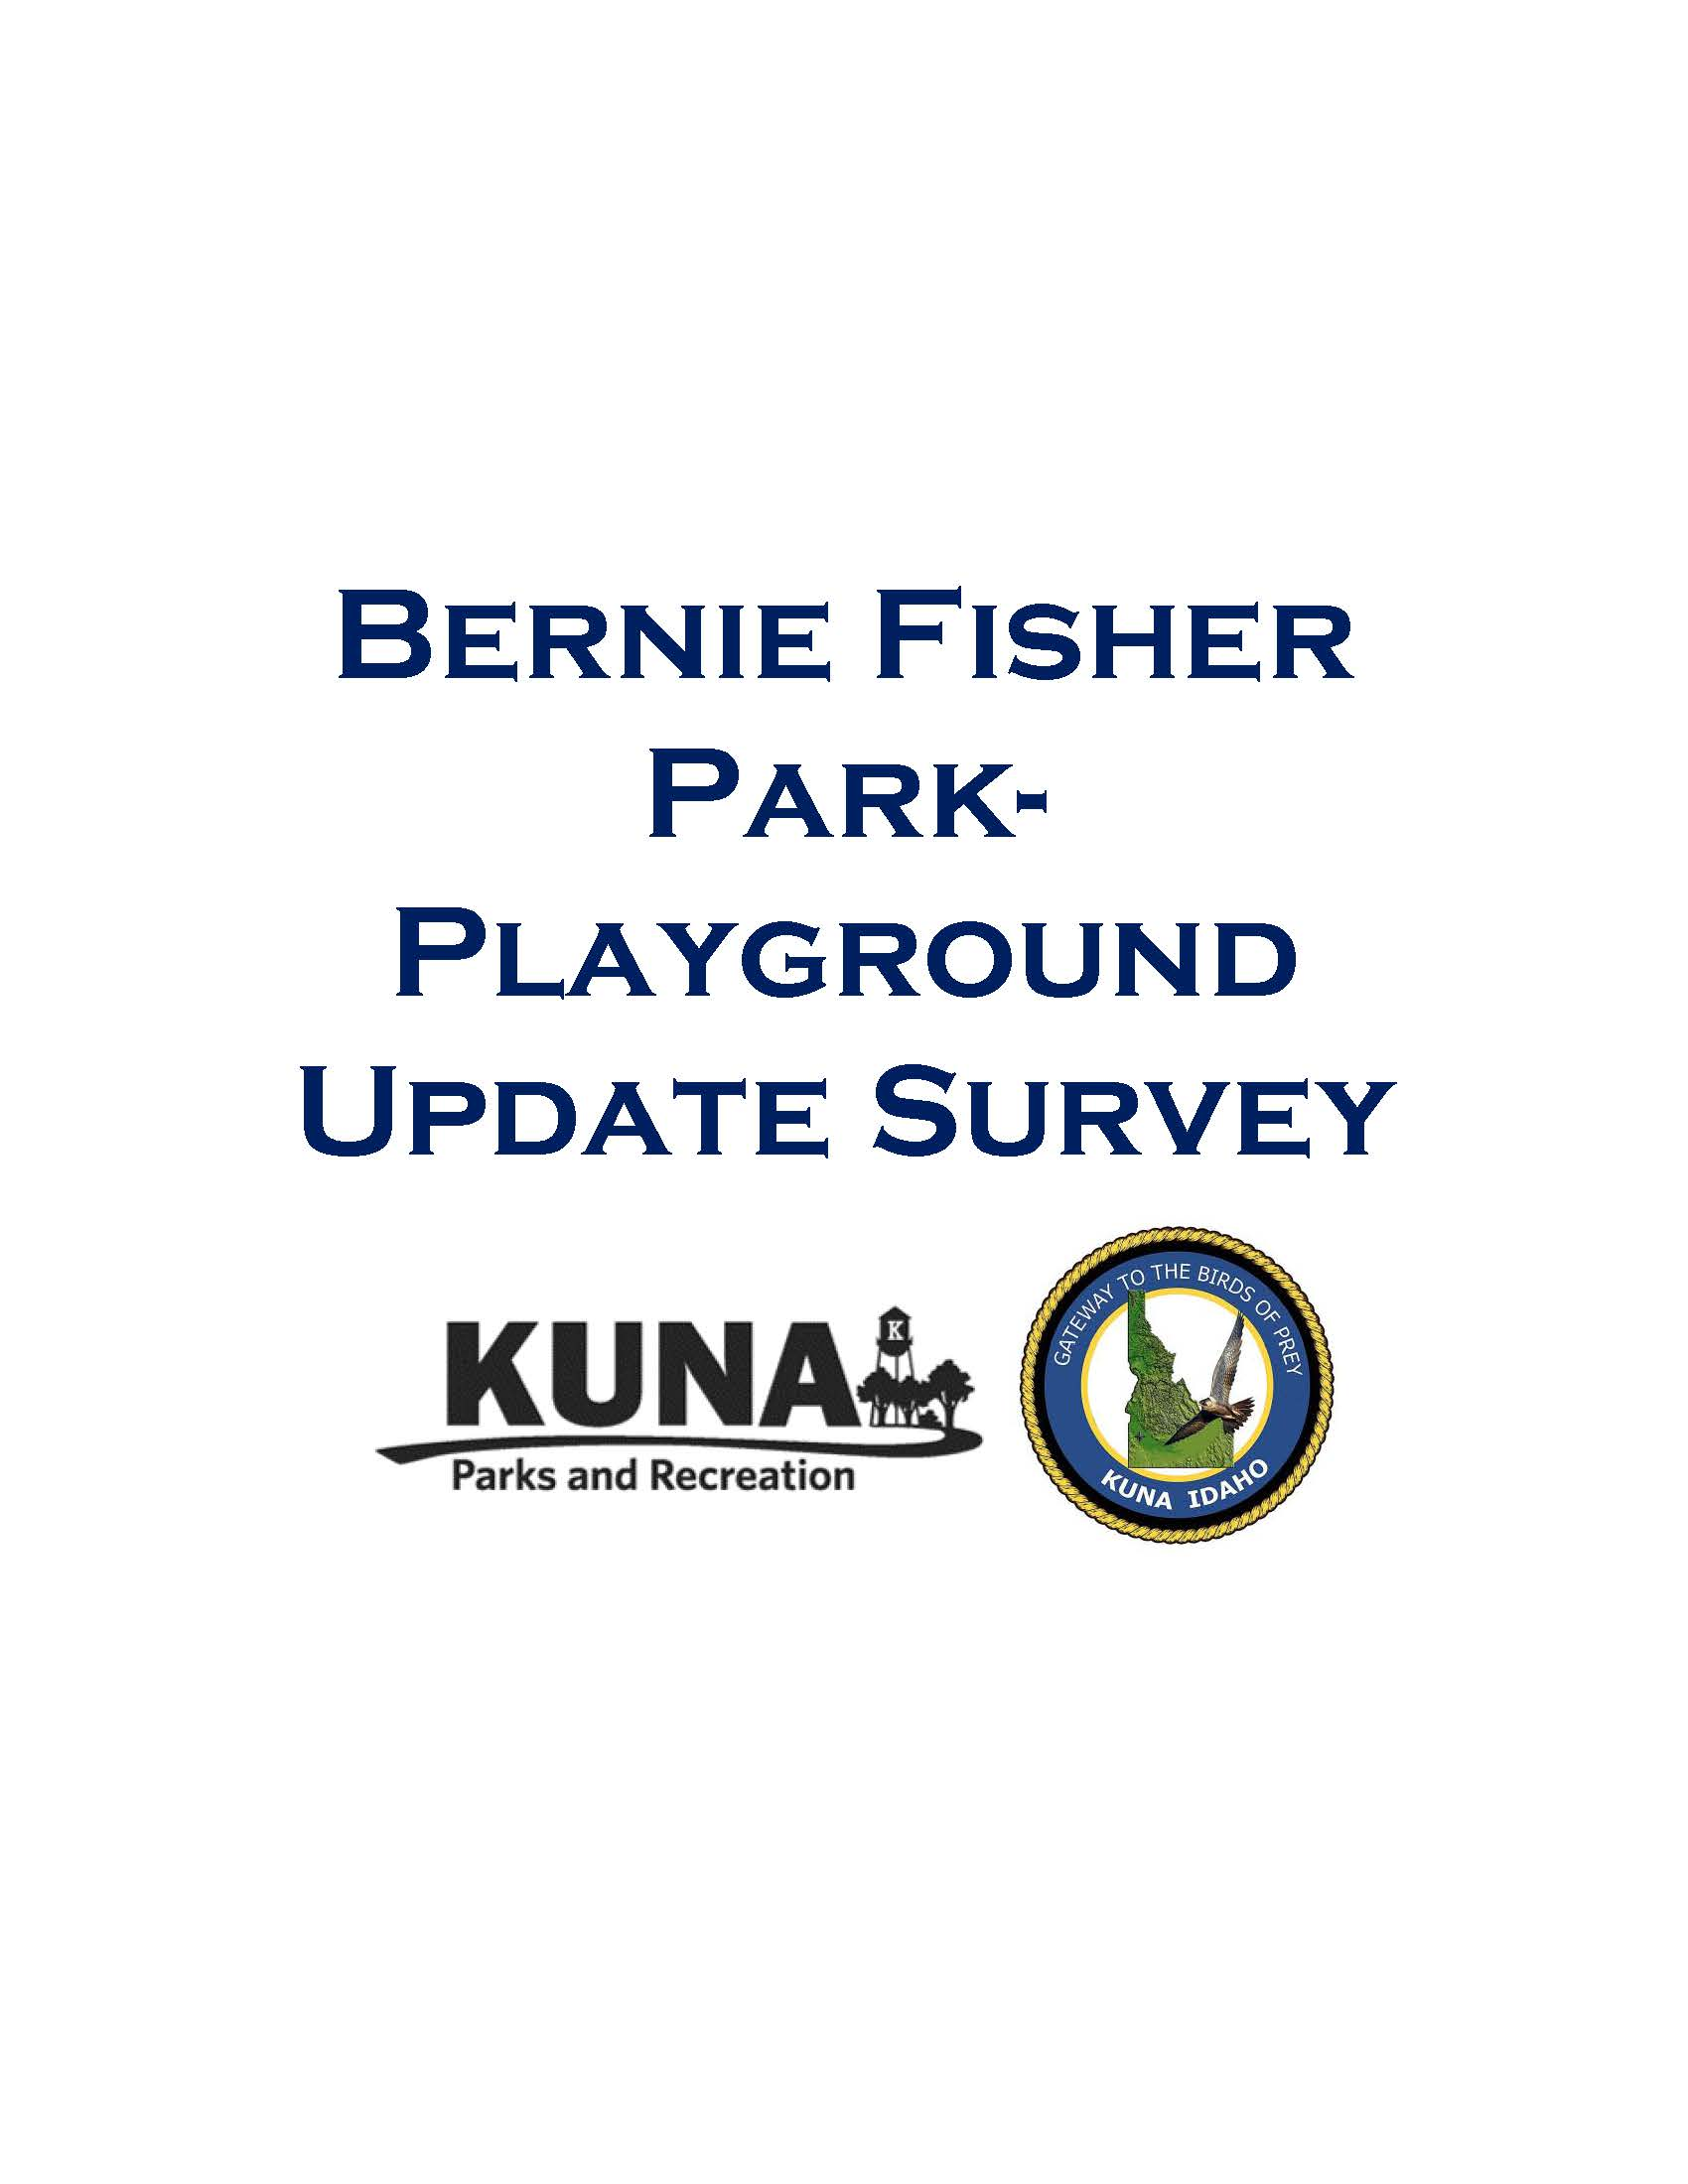 Bernie Fisher Park (JPEG)